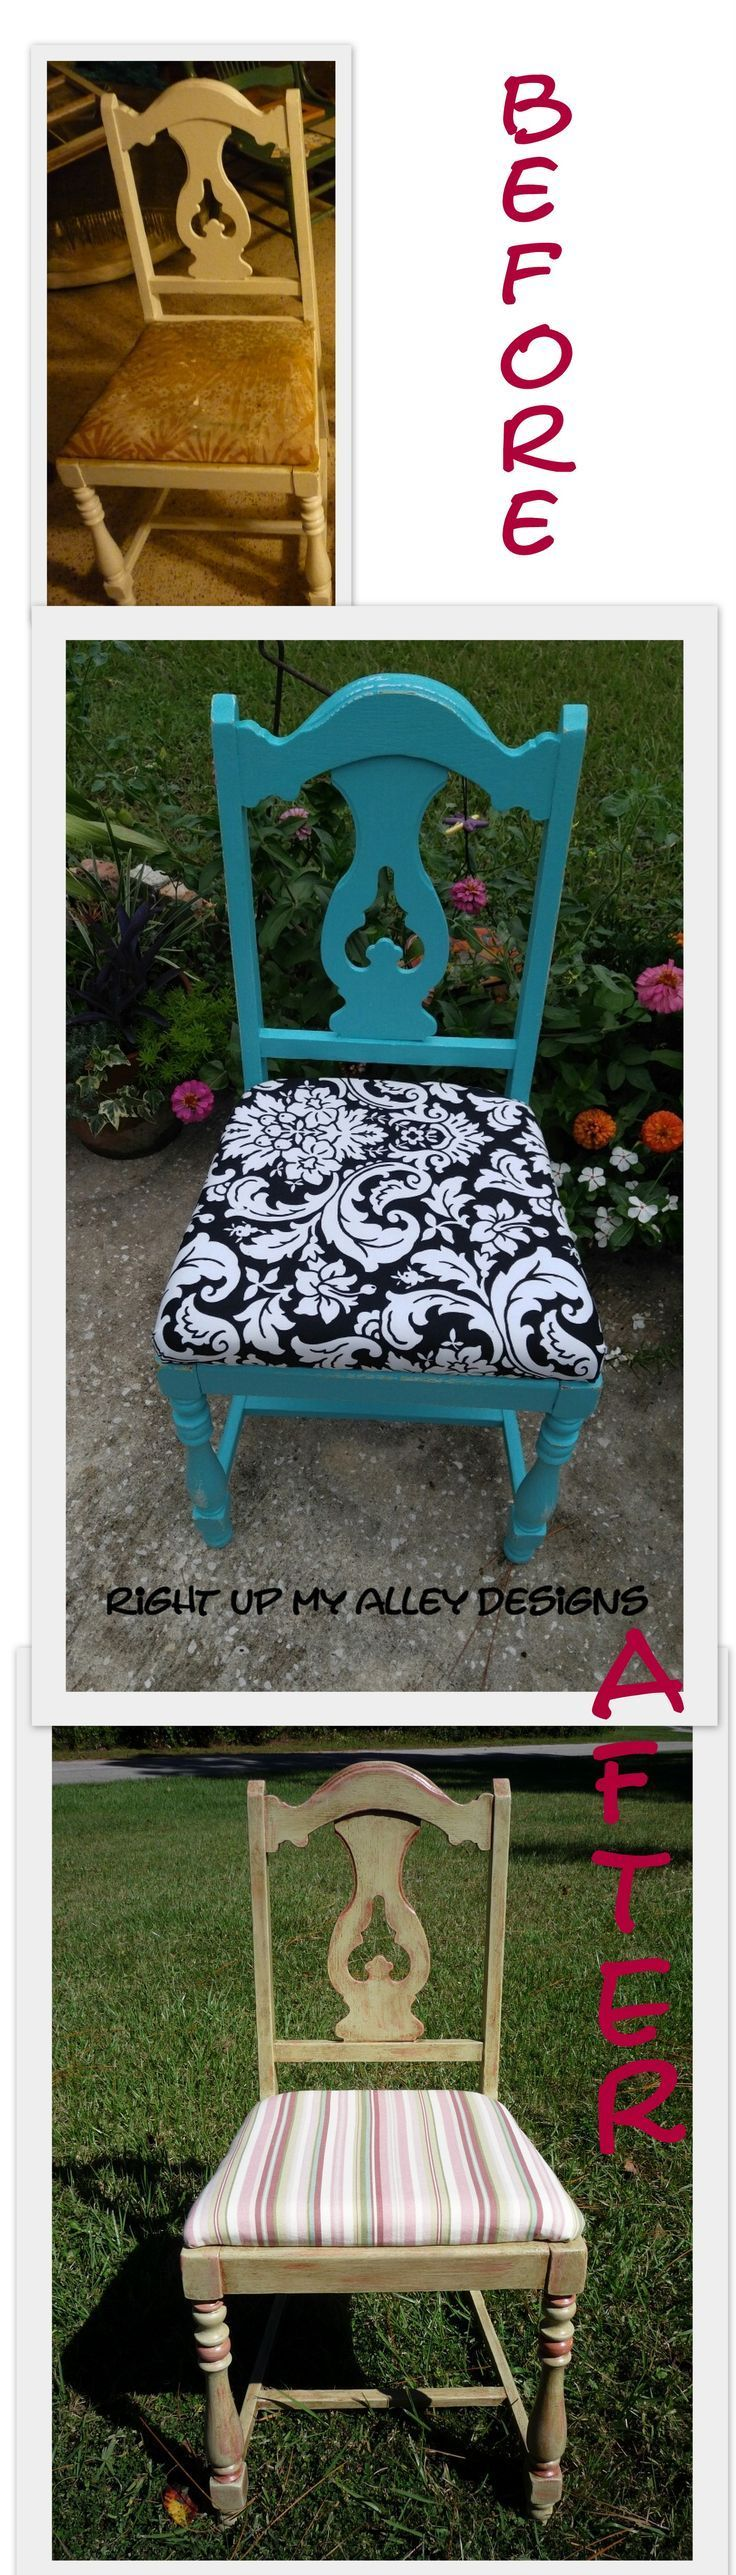 Best Bohemian Decor Accent Chair Upholstered Chair Turquoise 640 x 480